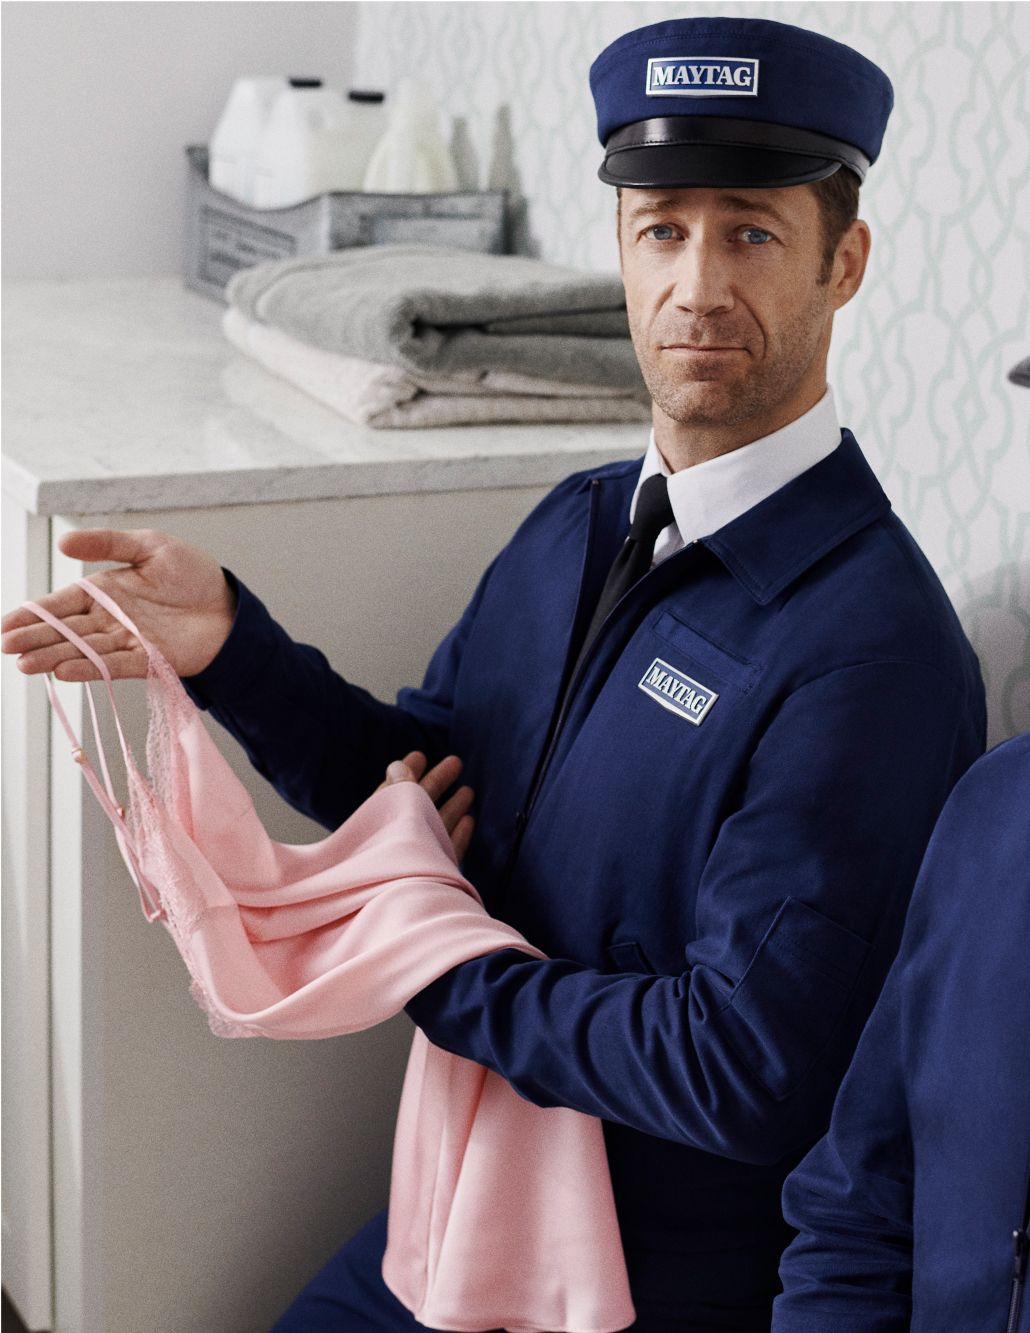 Maytag man holding a nightie.